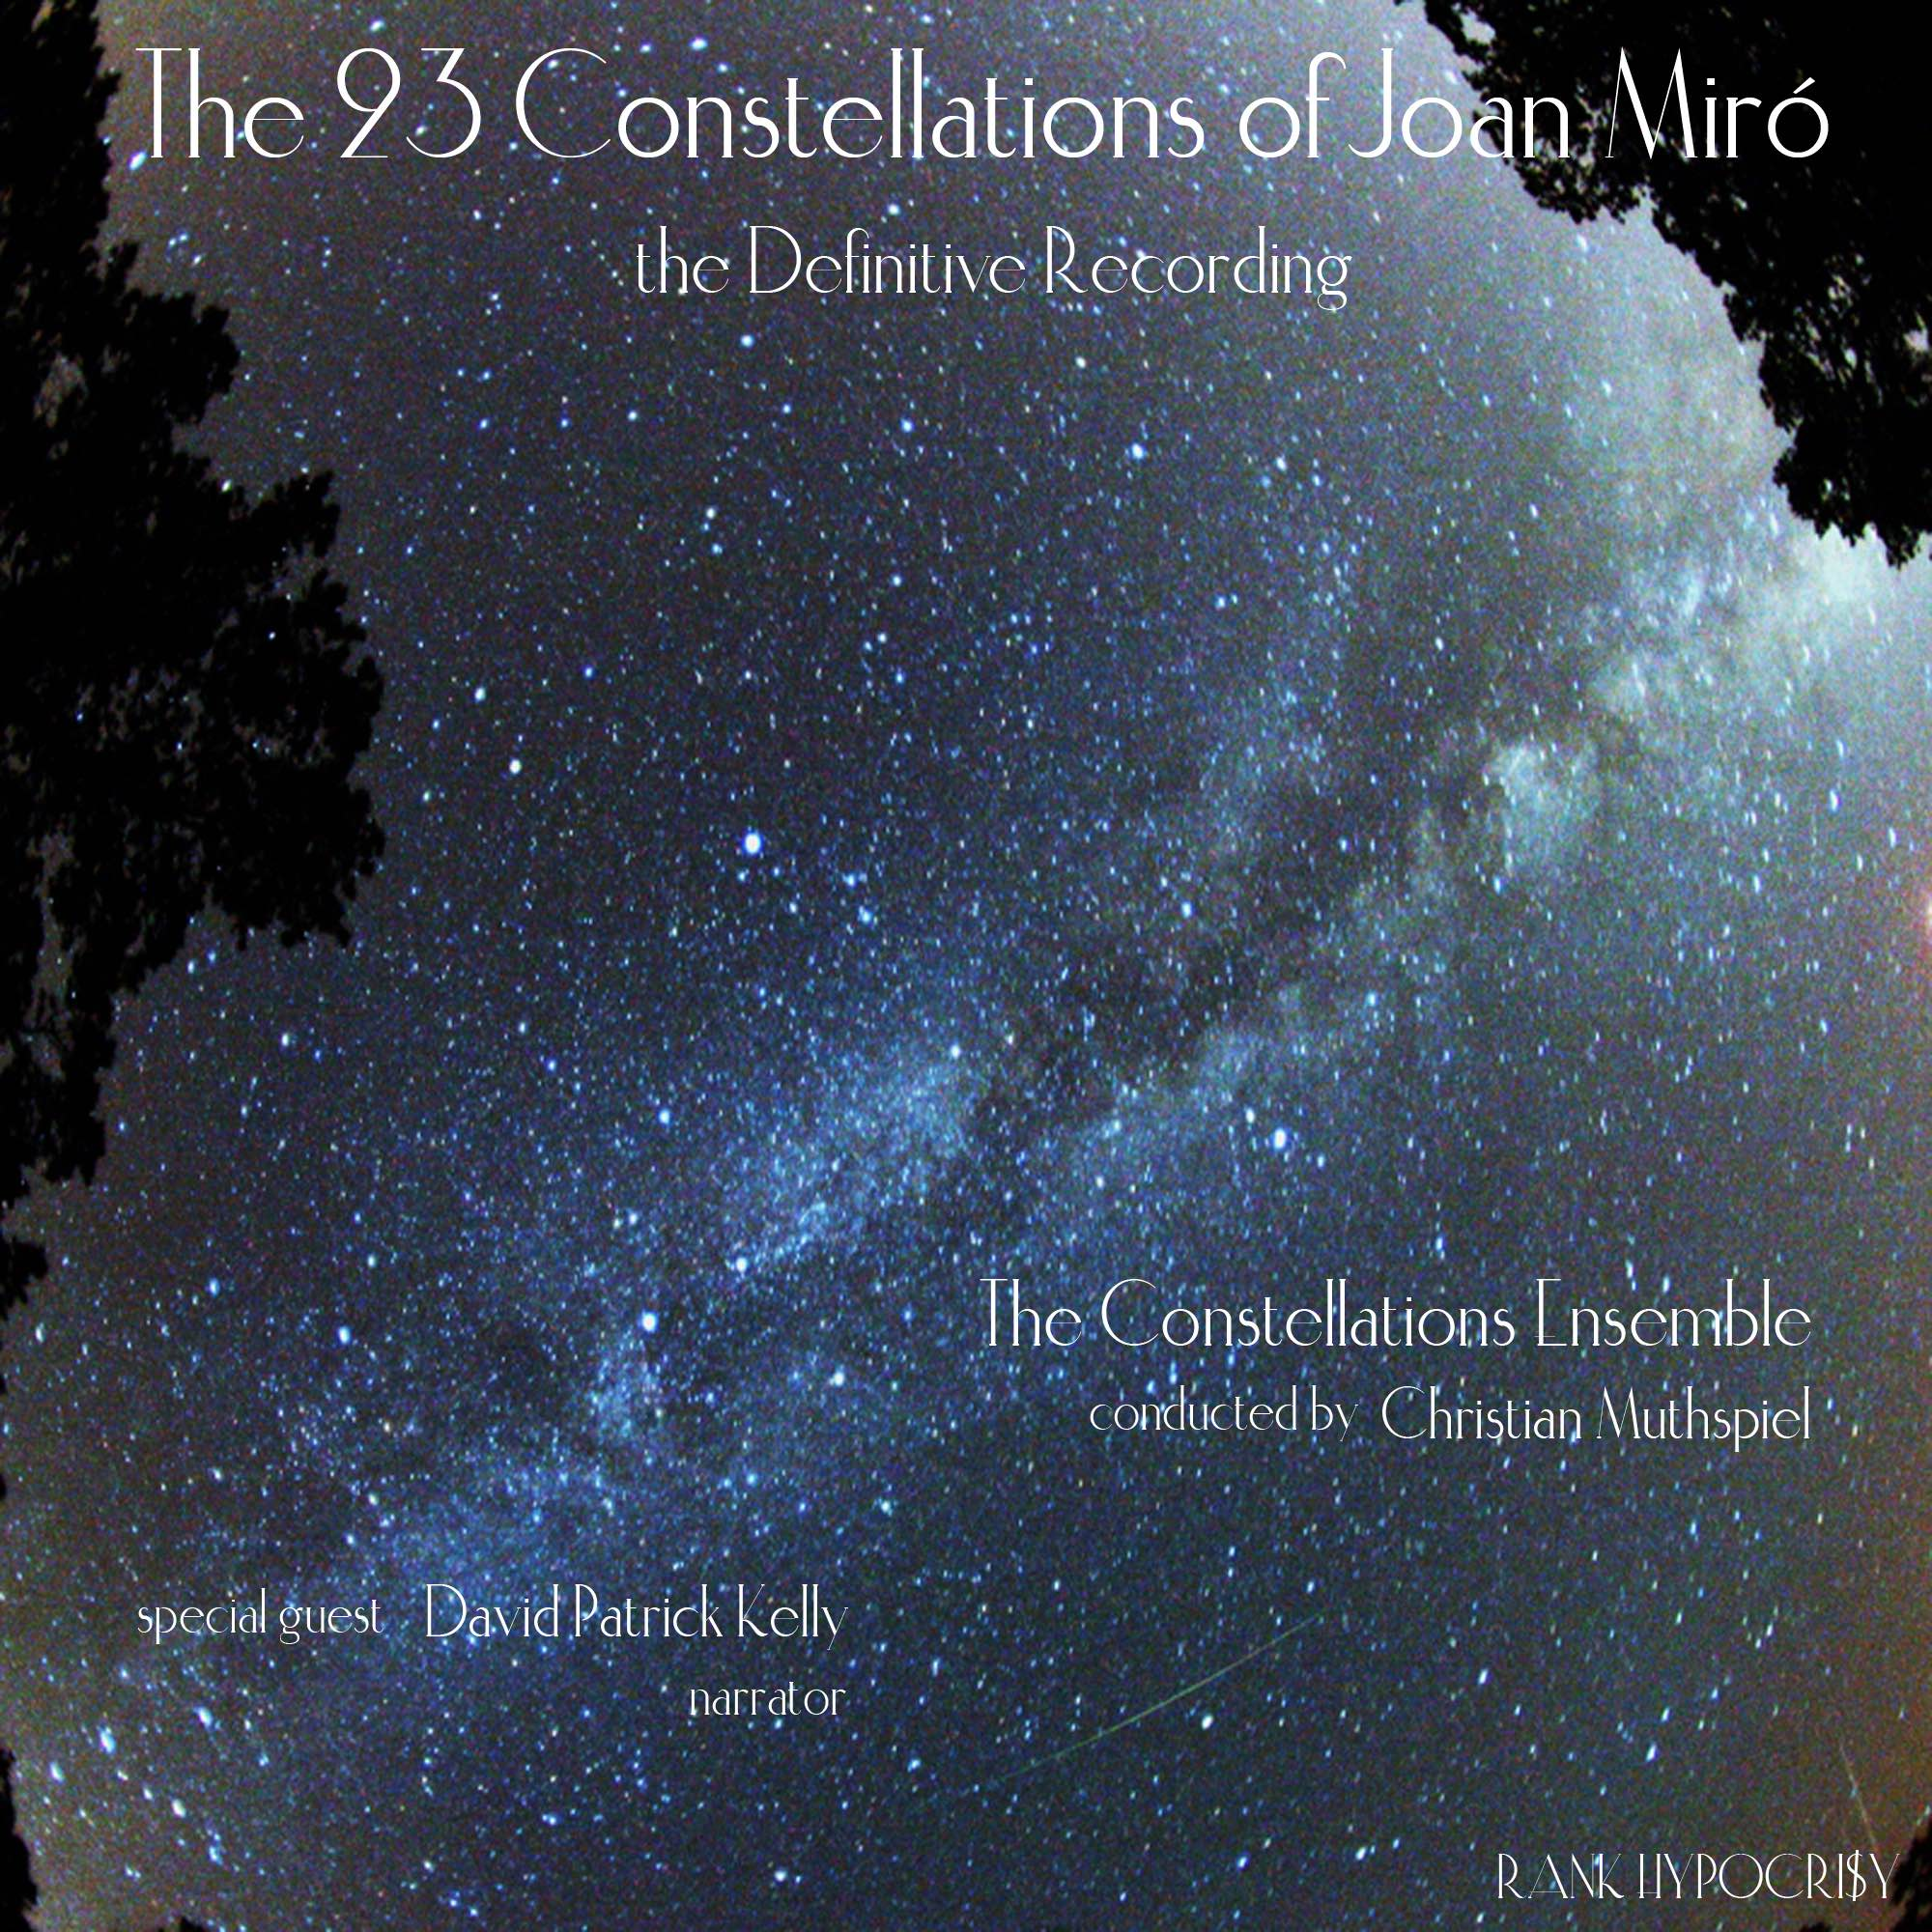 23 CONSTELLATIONS:   the definitive recording, with narration   conducted by CHRISTIAN MUTHSPIEL, DAVID PATRICK KELLY, voice